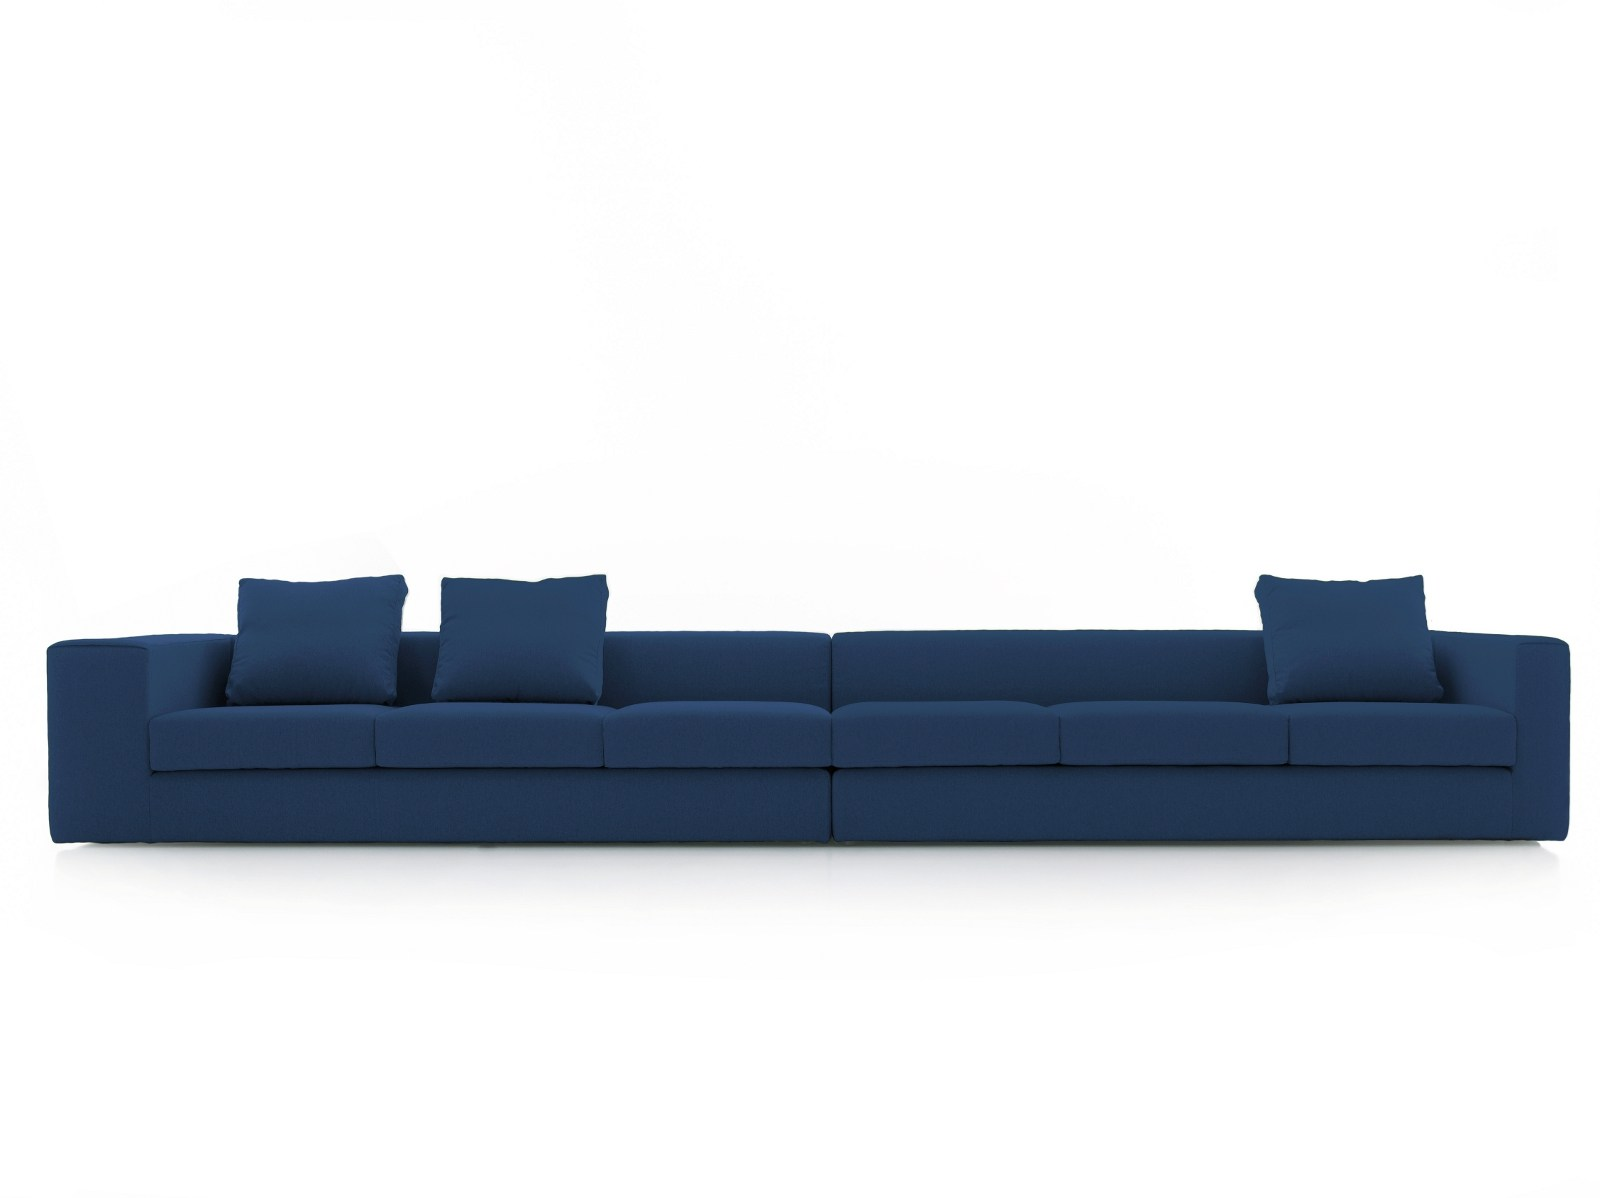 Modulare Sofas Berry Divano By Viccarbe